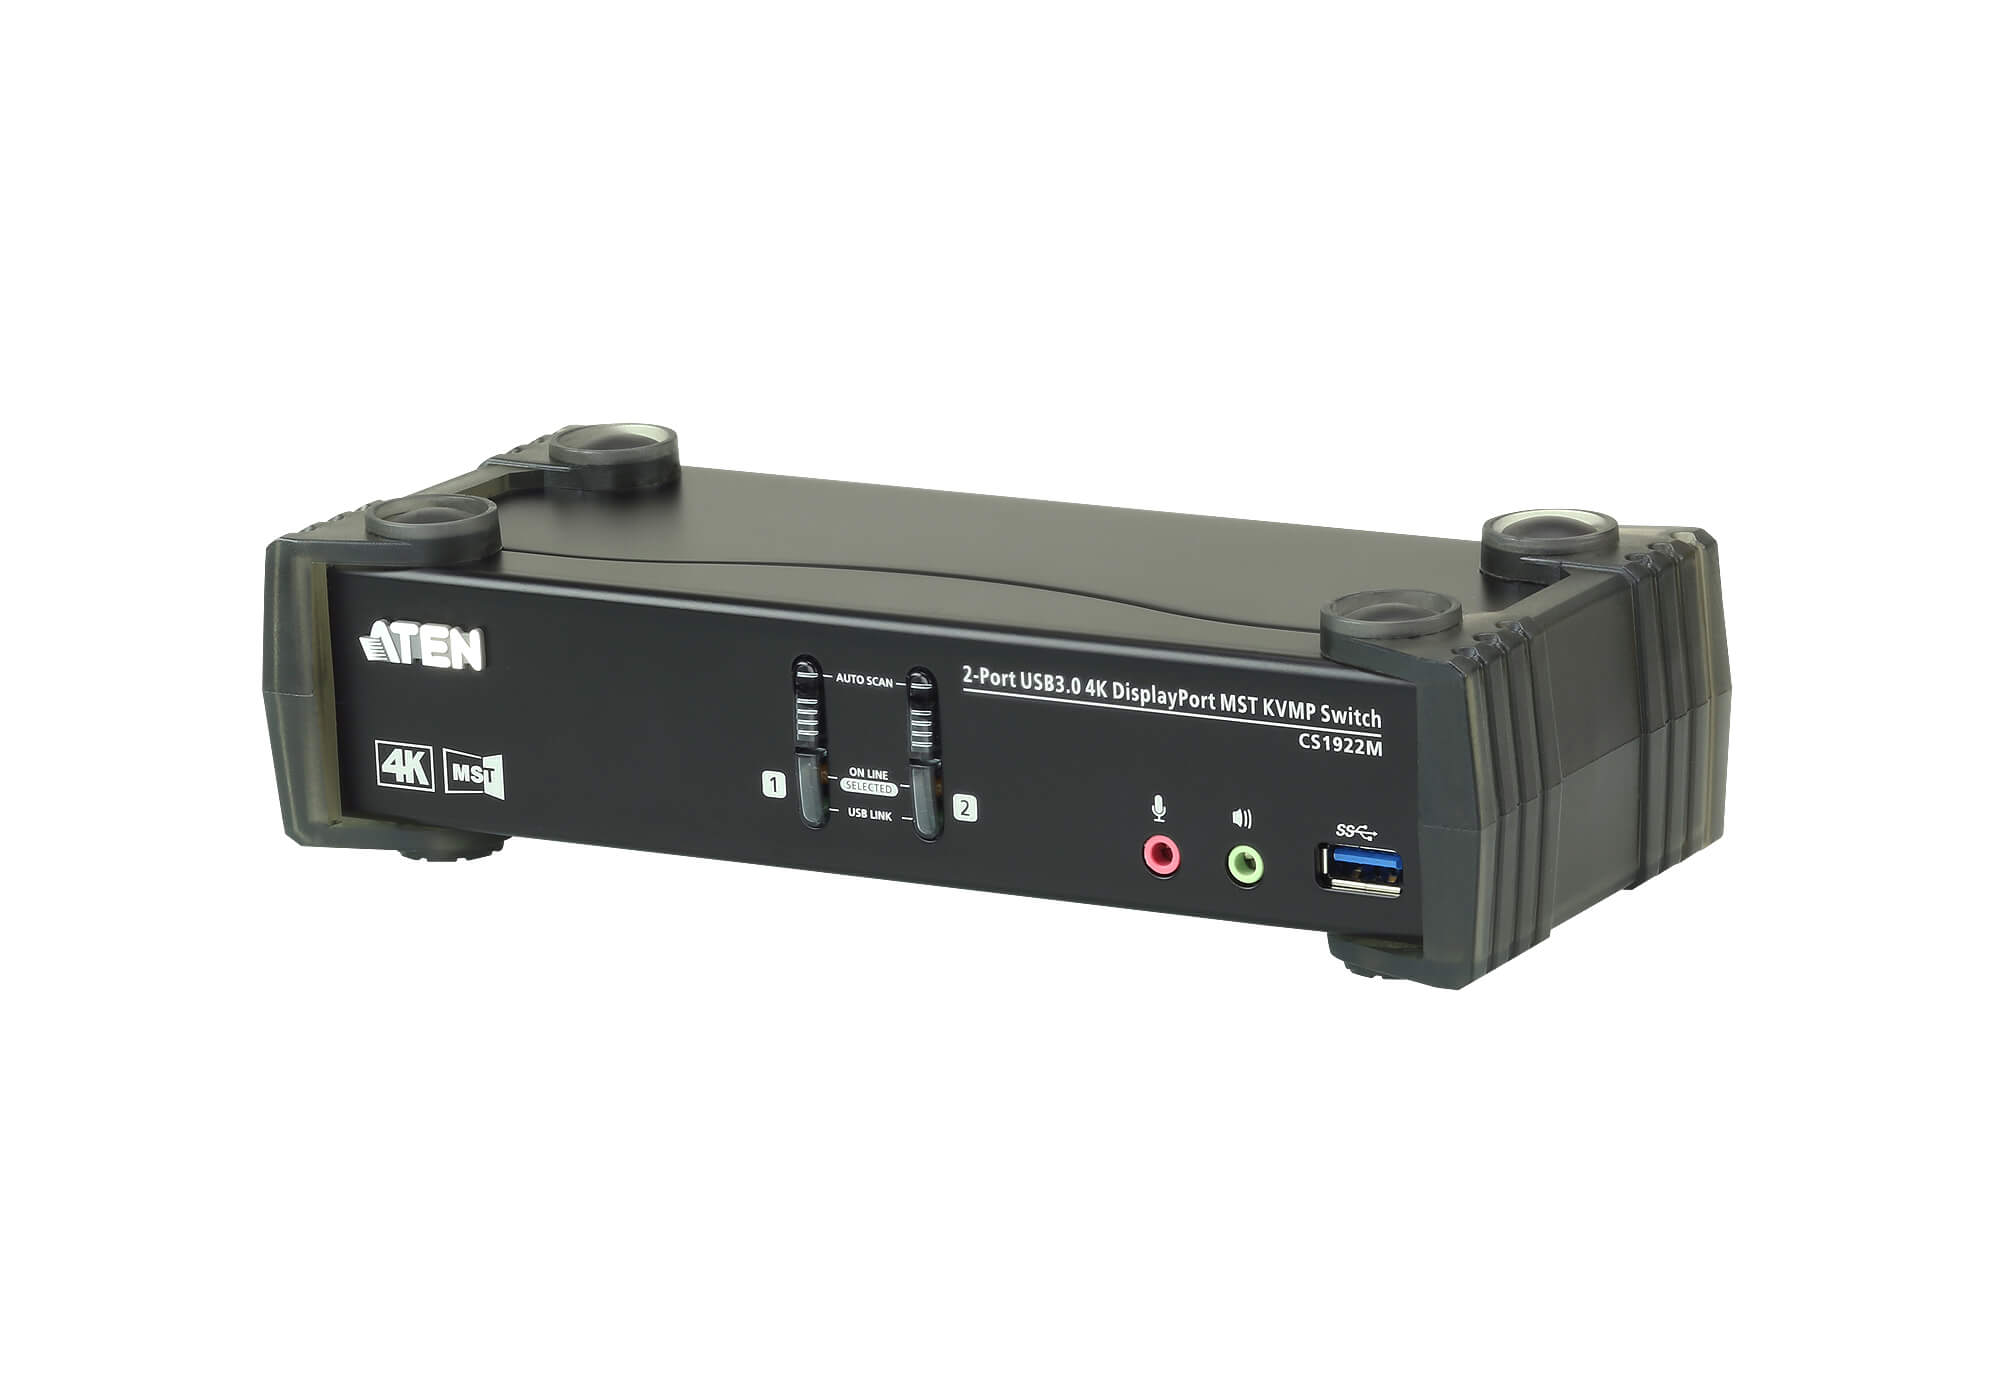 Aten 2 Port USB 3.0 4K DisplayPort KVMP Switch, Build-in MST Hub, with 1 HDMI and 1 DP outputs